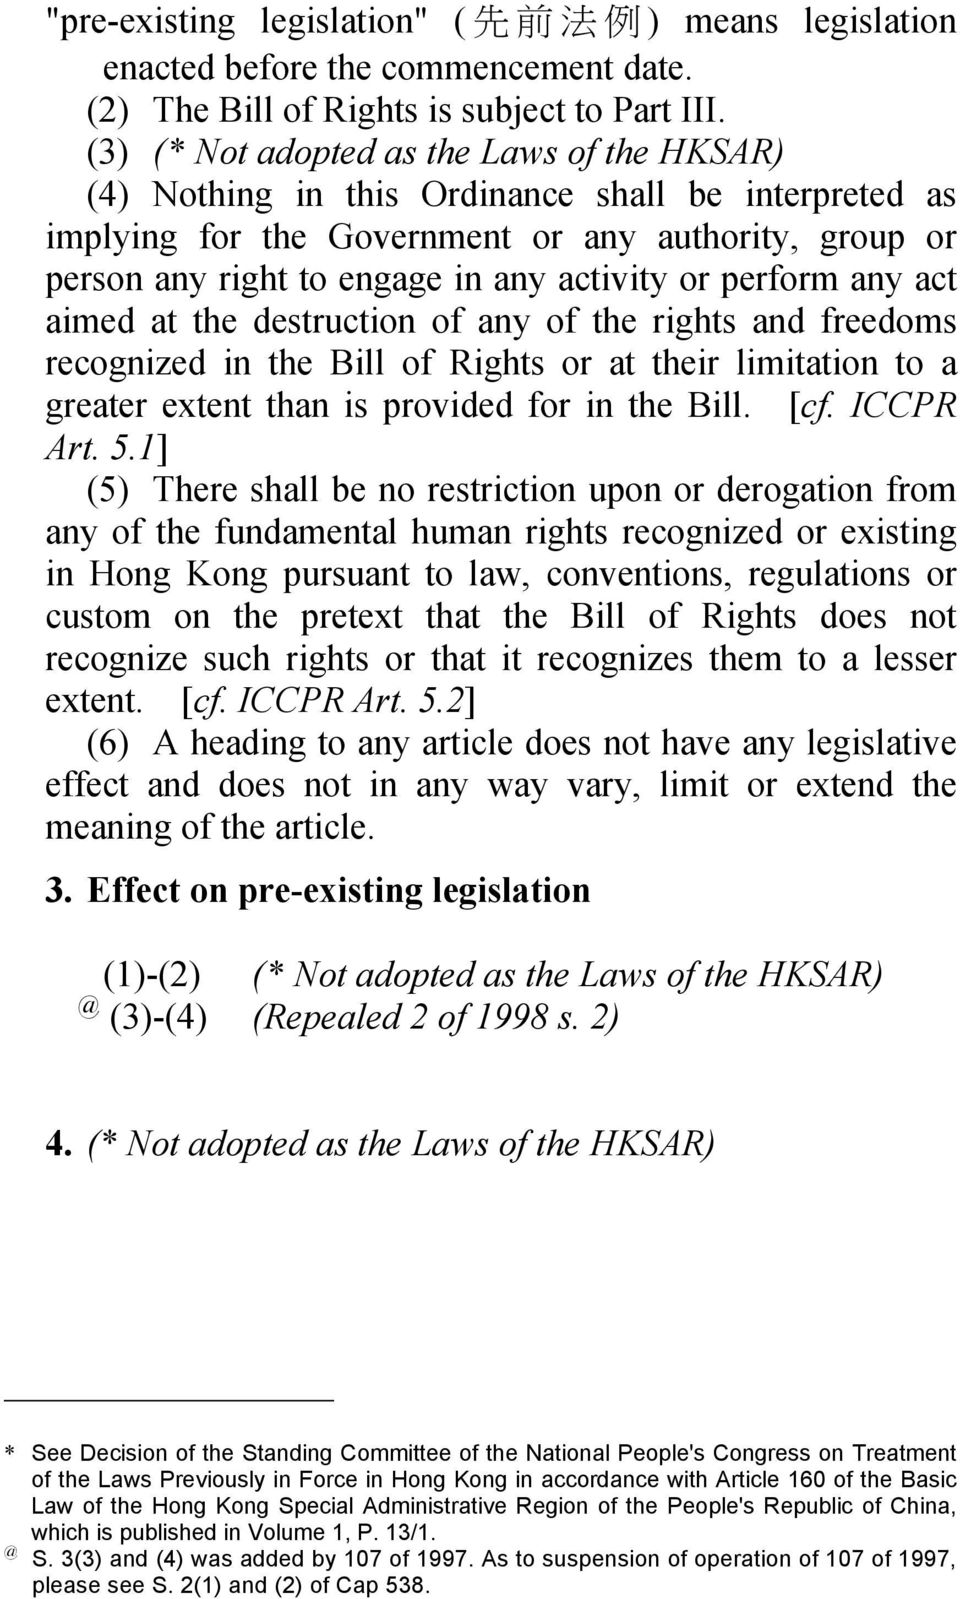 perform any act aimed at the destruction of any of the rights and freedoms recognized in the Bill of Rights or at their limitation to a greater extent than is provided for in the Bill. [cf. ICCPR Art.